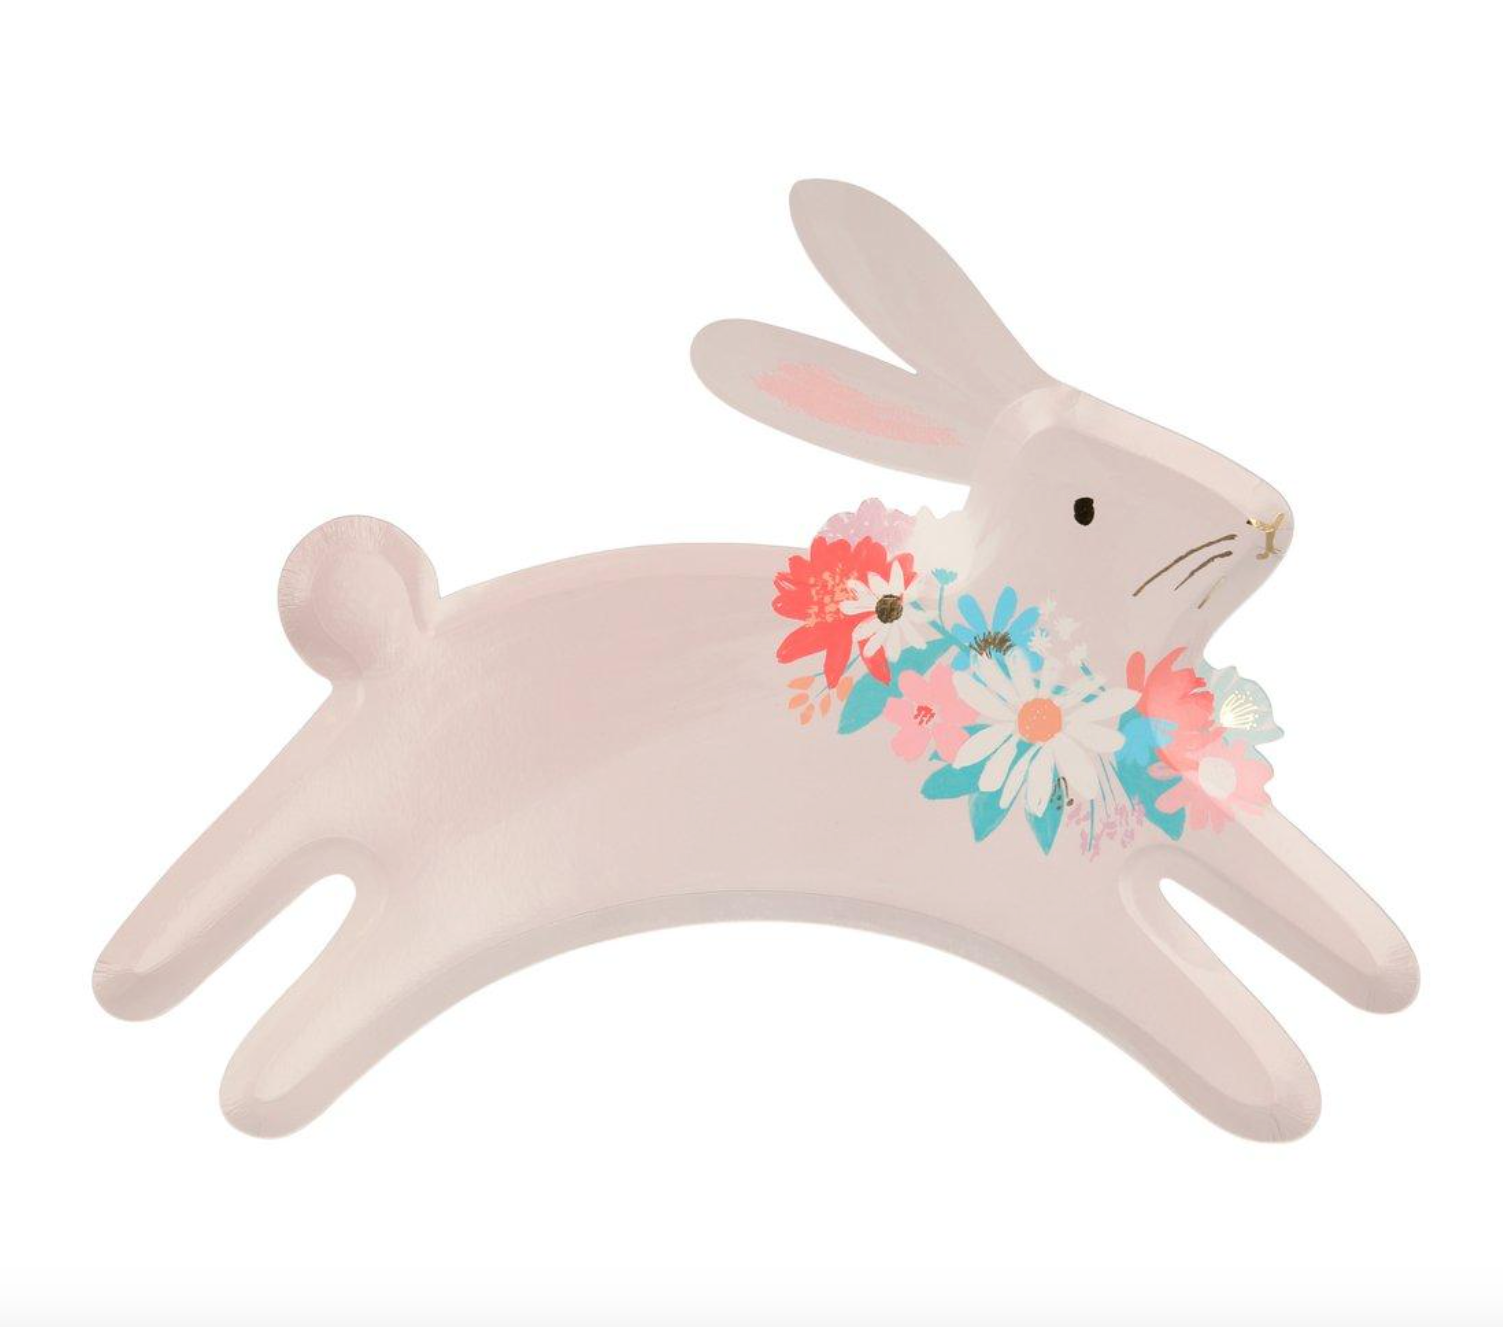 Leaping Bunnies Plates